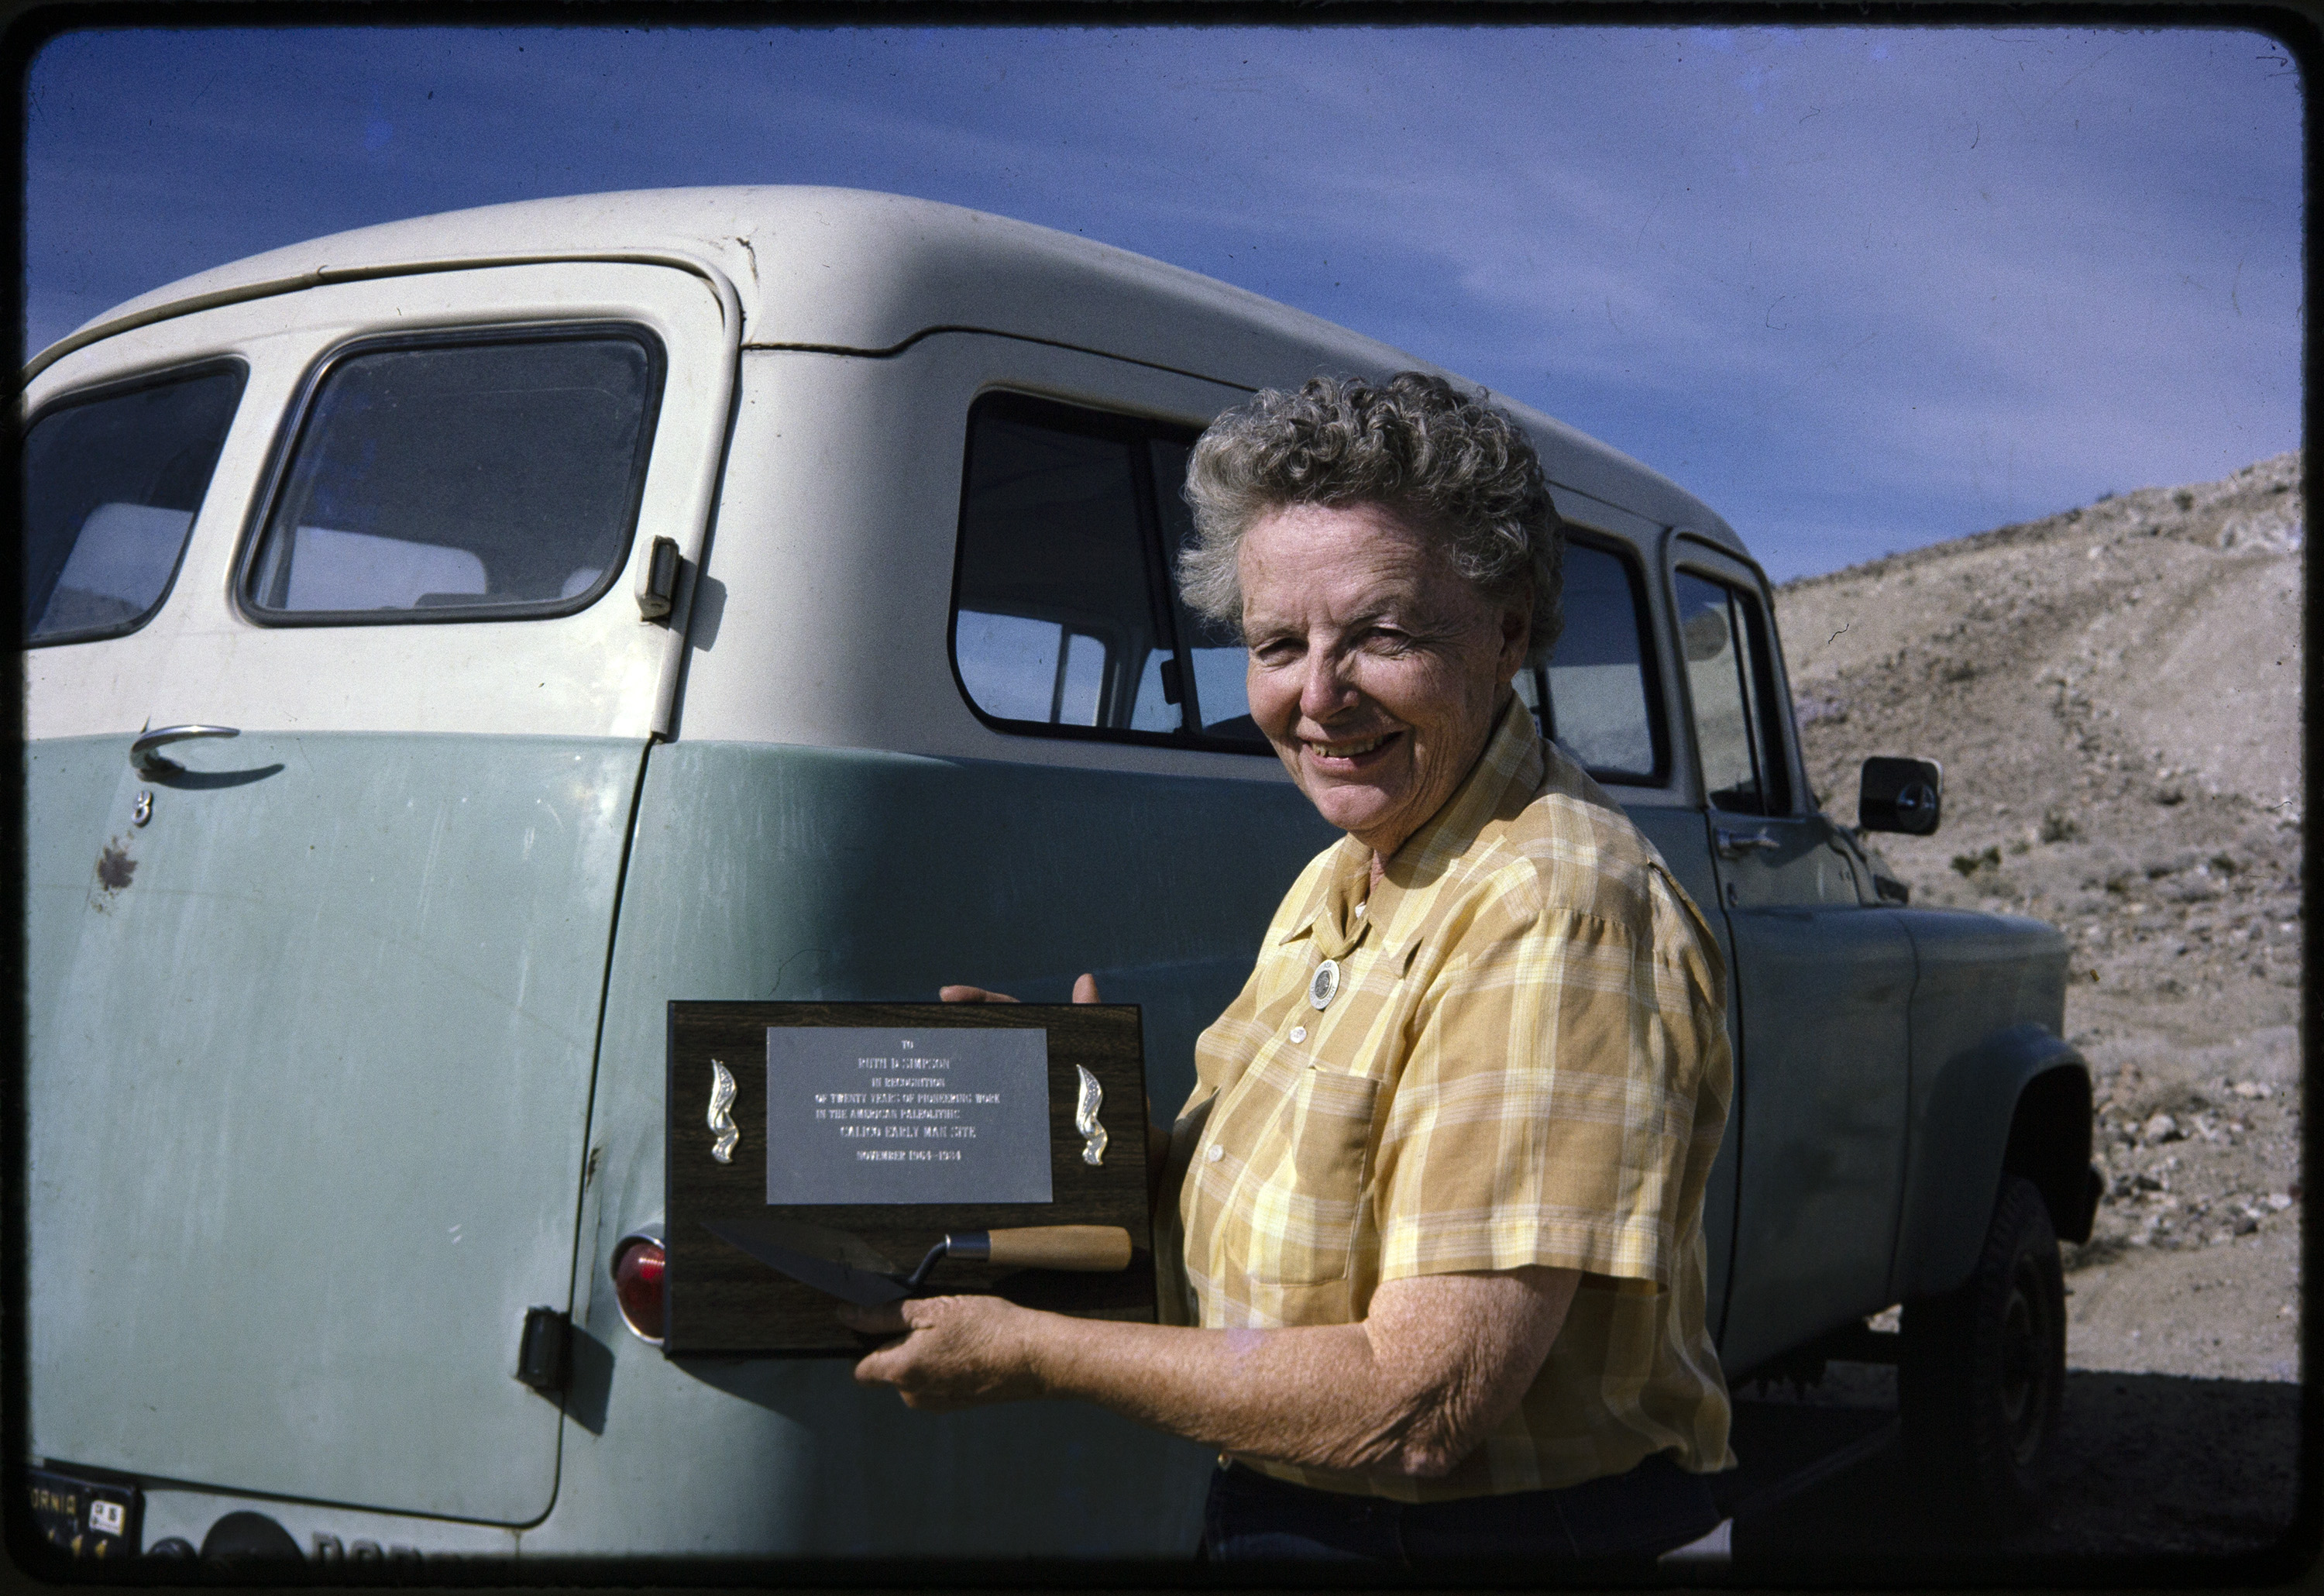 Image of archaeologist Ruth Simpson, an older woman with short gray hair, a yellow plaid shirt, holding a plaque. In the background is an old field vehicle from the 1950s or 1960s.